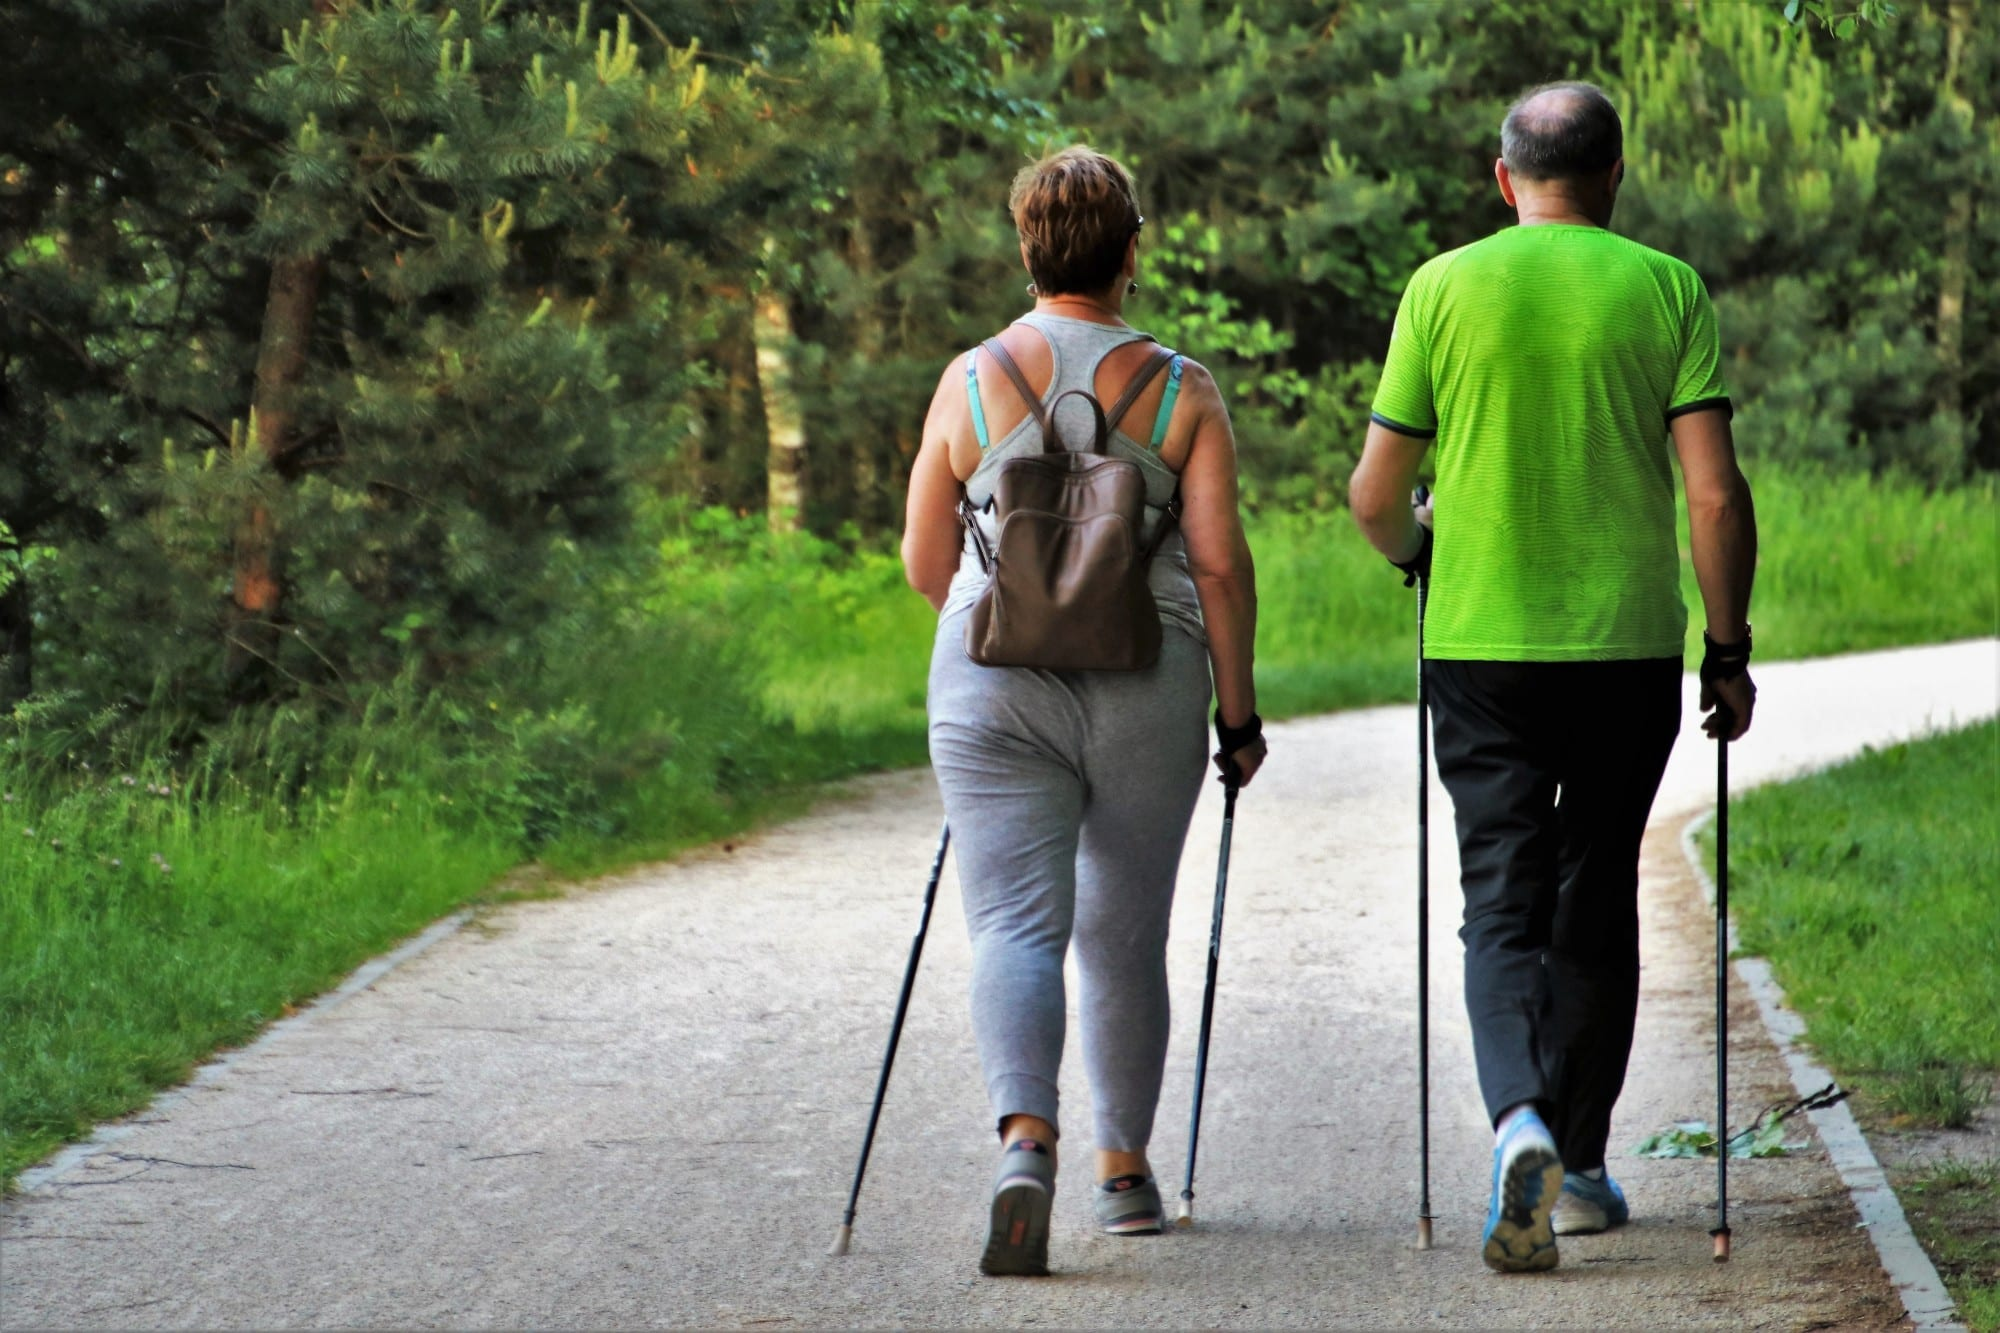 Fitness Over 60: How Fitness and an Active Lifestyle Play an Important Role in Improving a Senior's Quality of Life